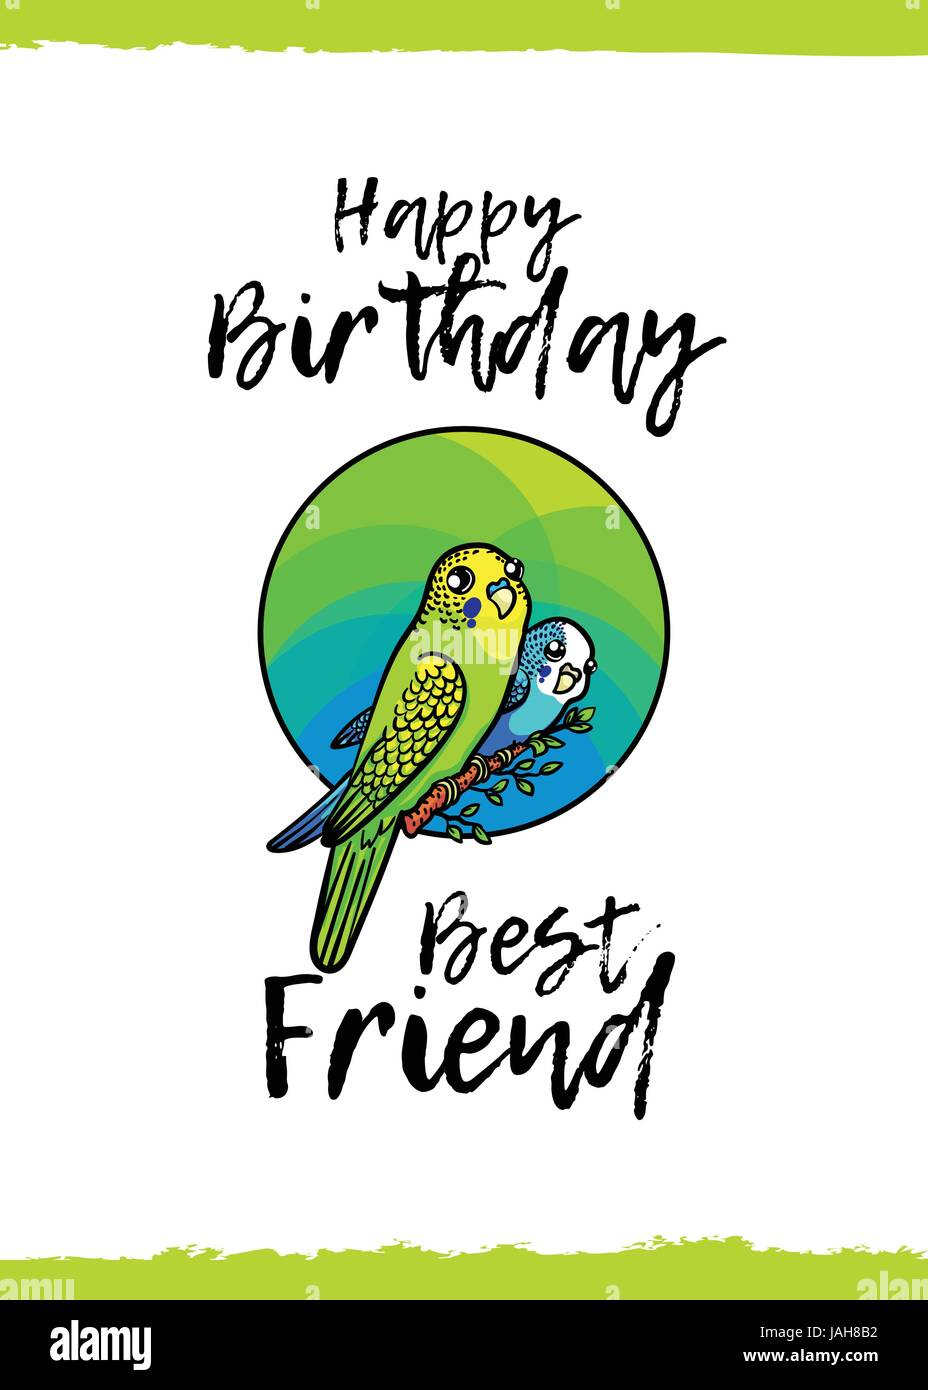 Happy birthday best friend greeting card with a cute animal and happy birthday best friend greeting card with a cute animal and kind wish cartoon style a pair of colored small parrots on branch in circle suita m4hsunfo